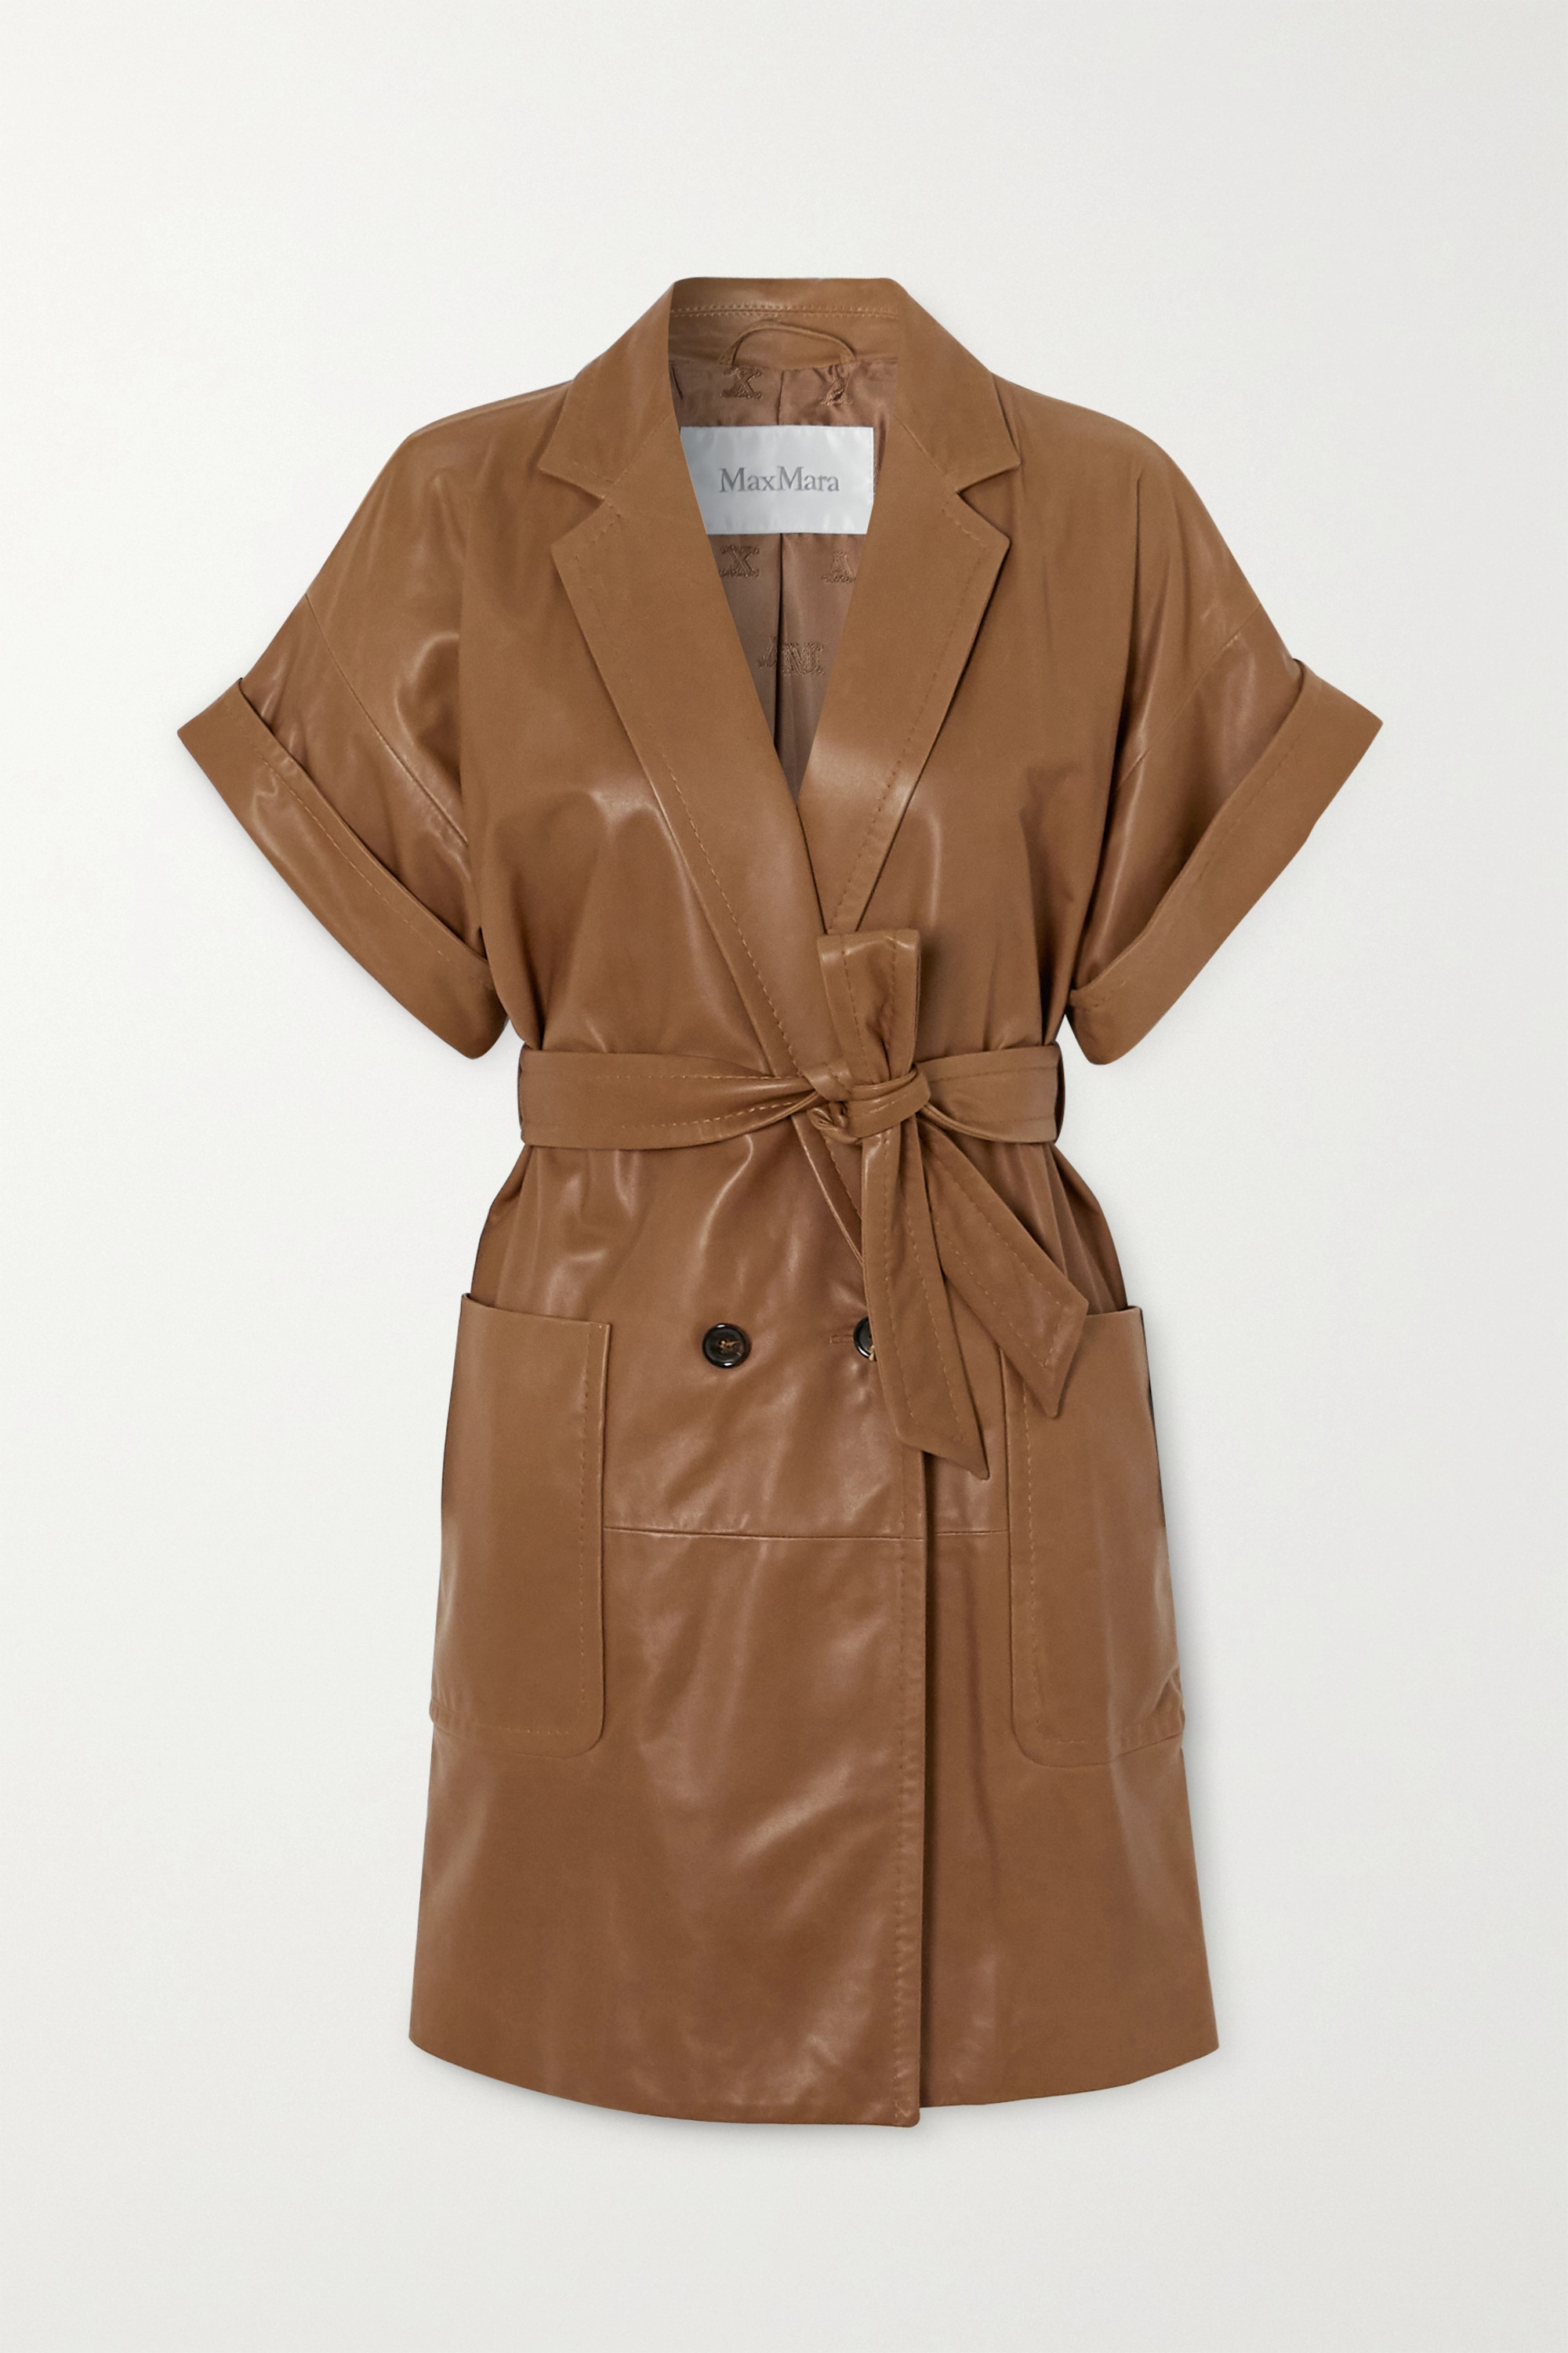 Max Mara Belted leather jacket